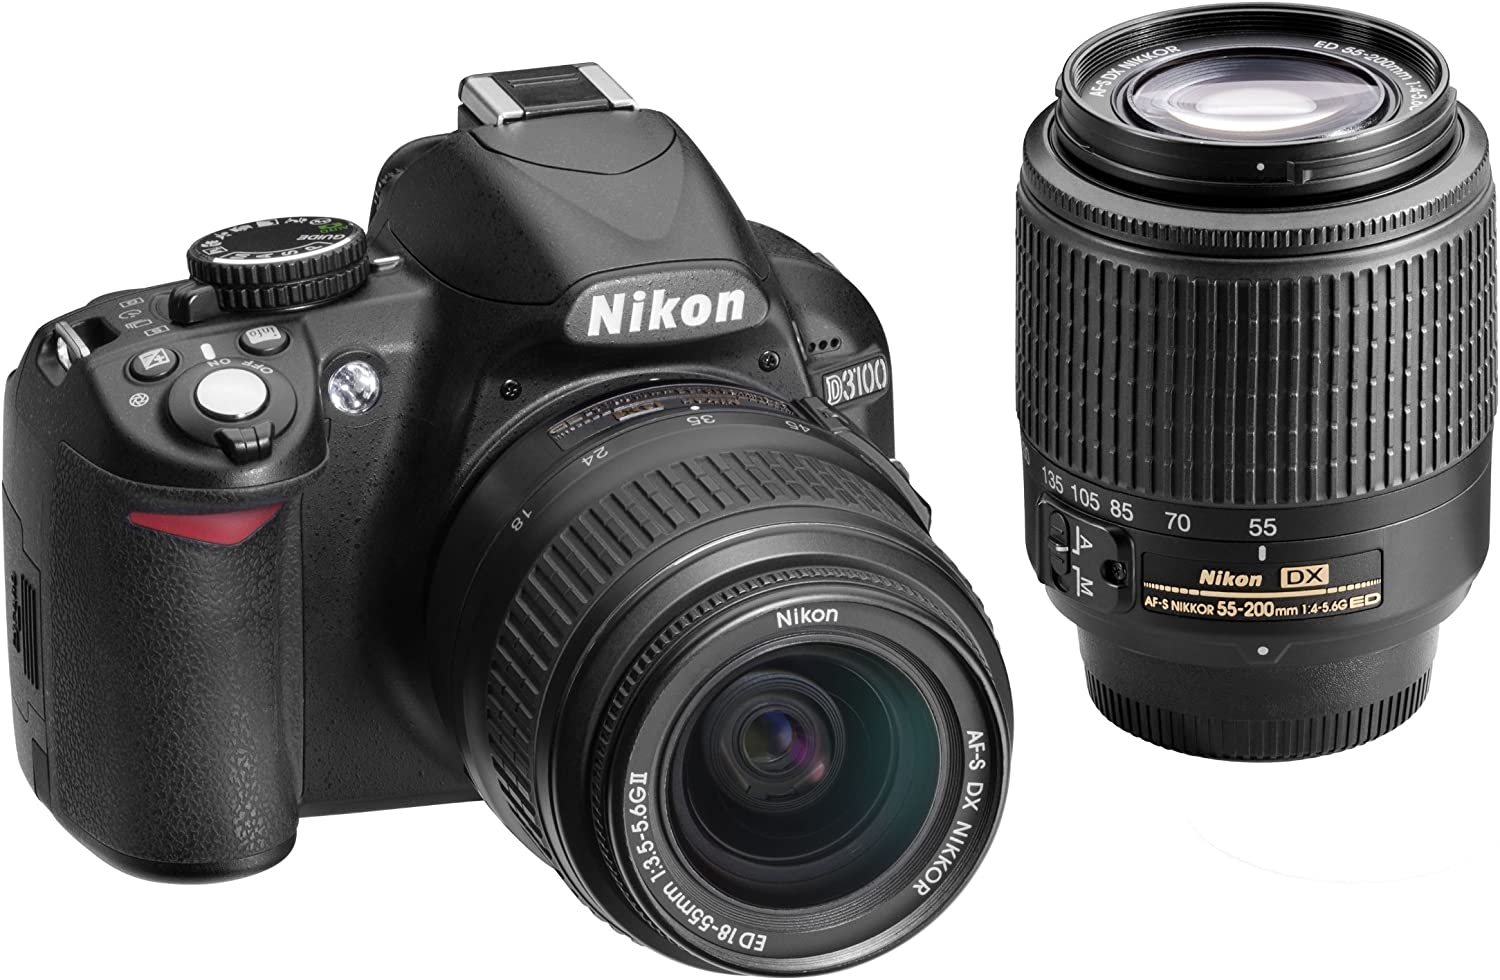 Nikon D3100 14.2MP In a Fashionable popularity Digital SLR with Lens 18-55mm Kit Double-Zoom